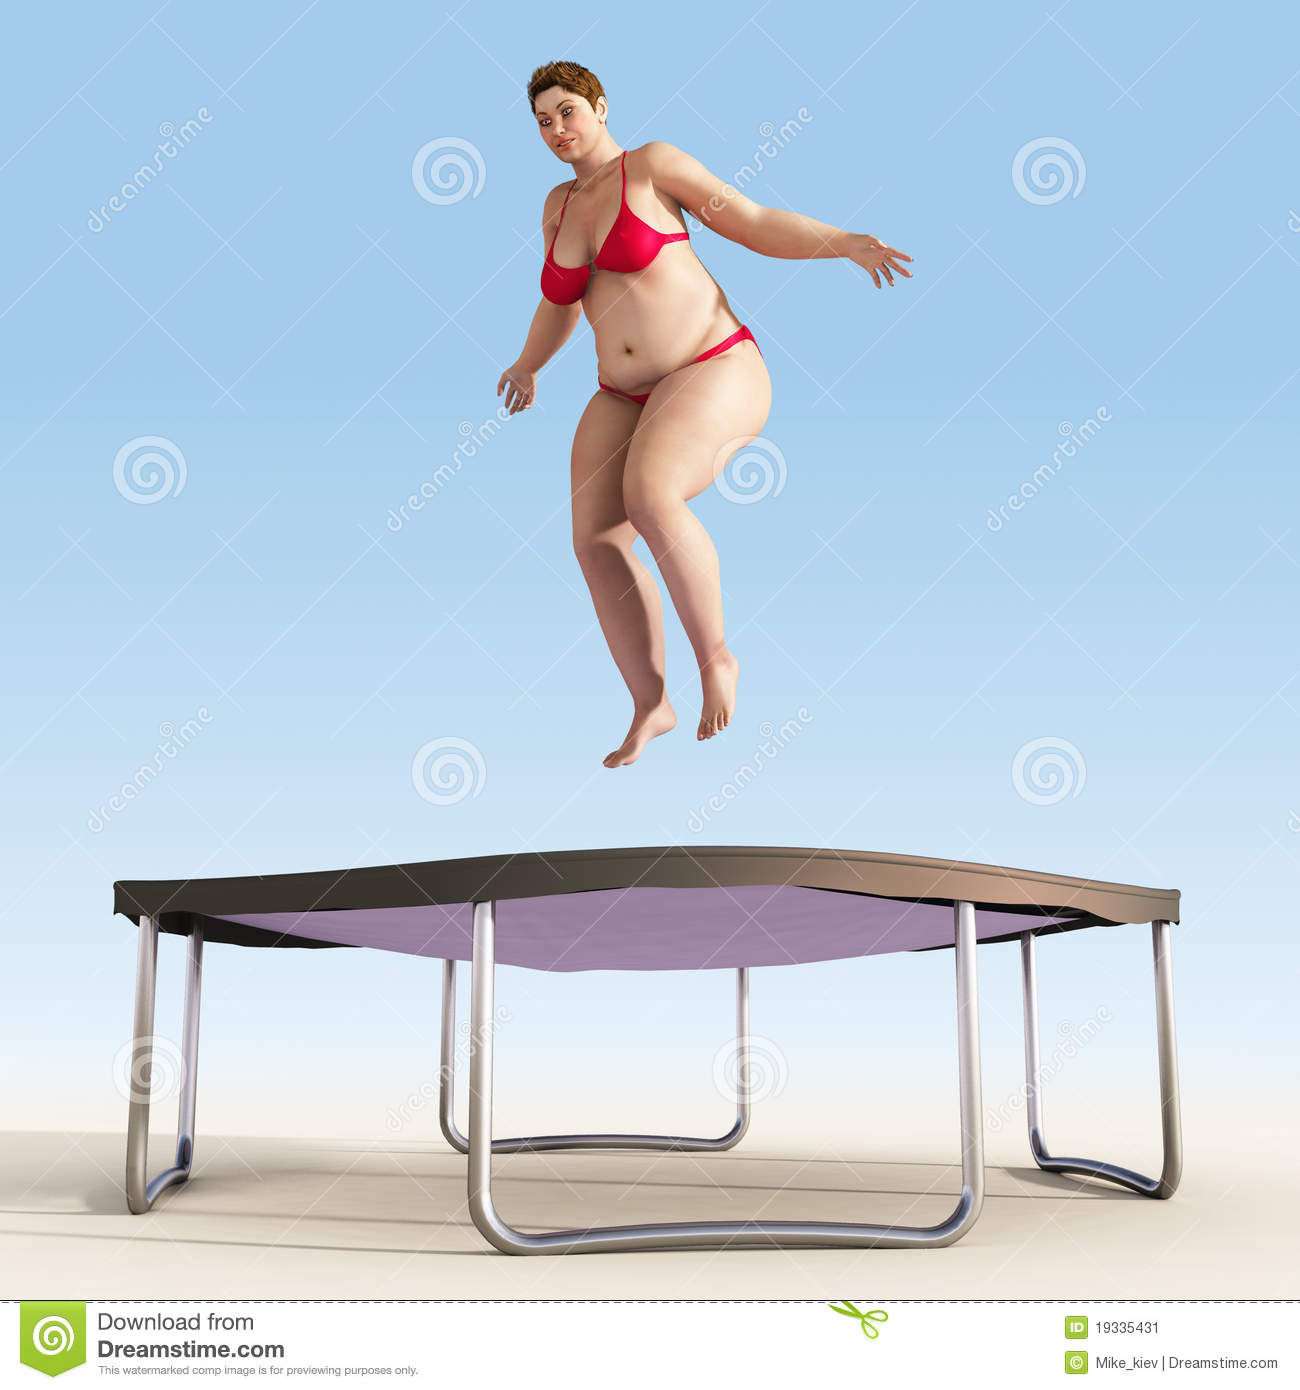 Woman Bikini Trampoline Stock Photos, Images, & Pictures.